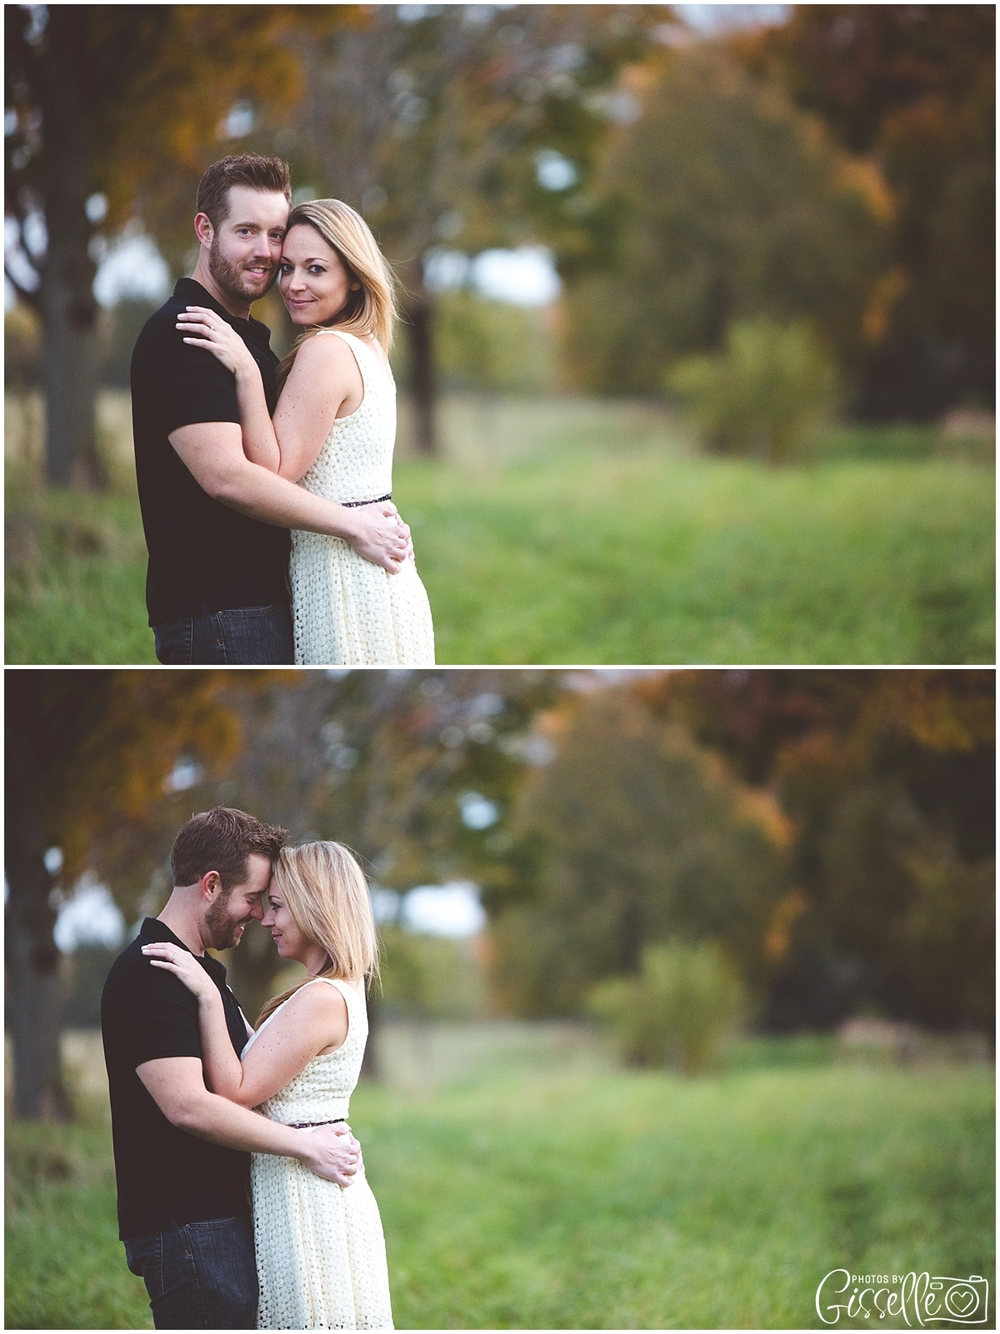 StCharles_Engagement_Photography_Leroy_oakes_0032.jpg